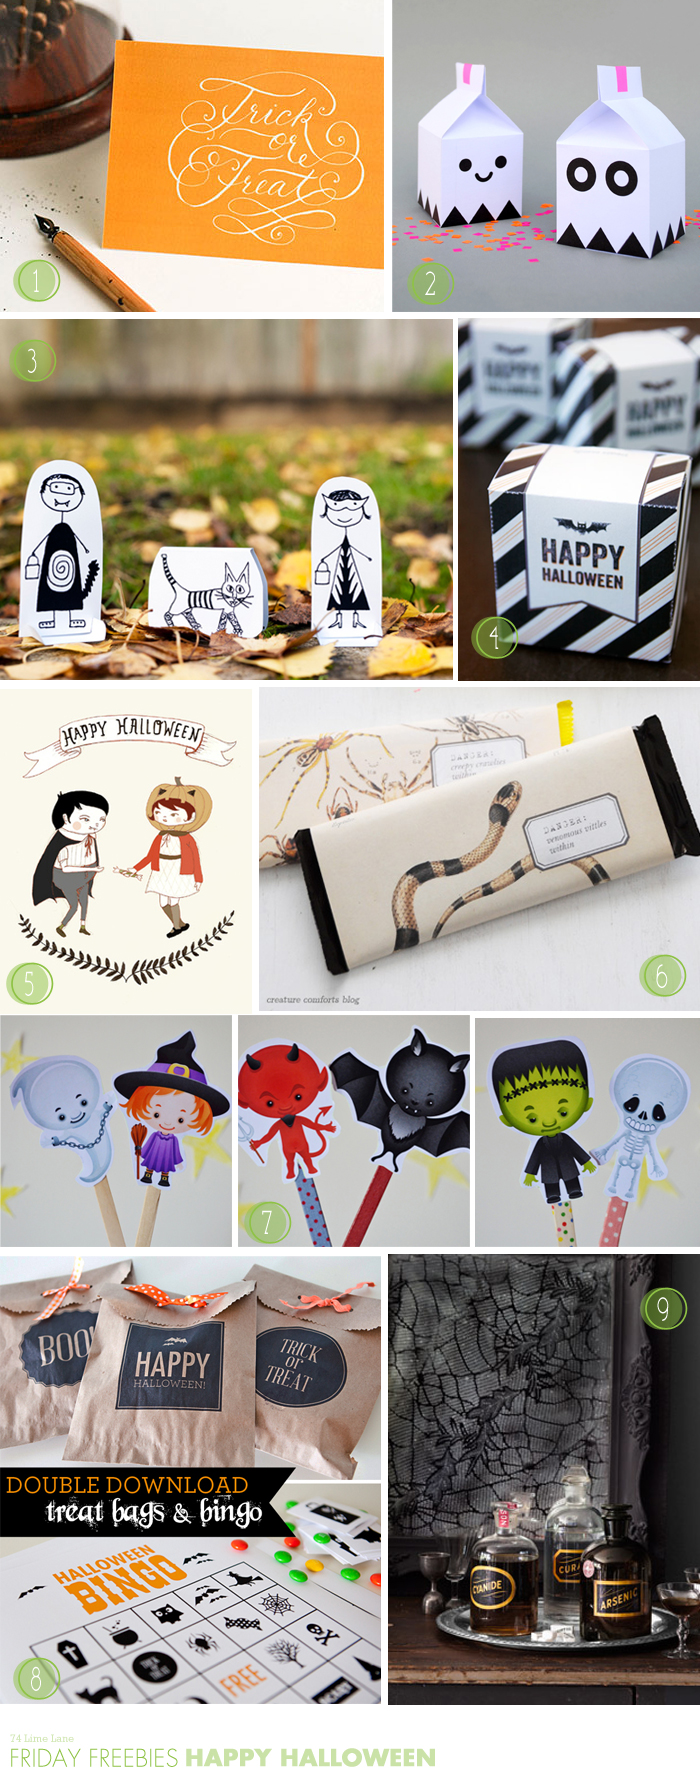 {friday freebies} happy halloween